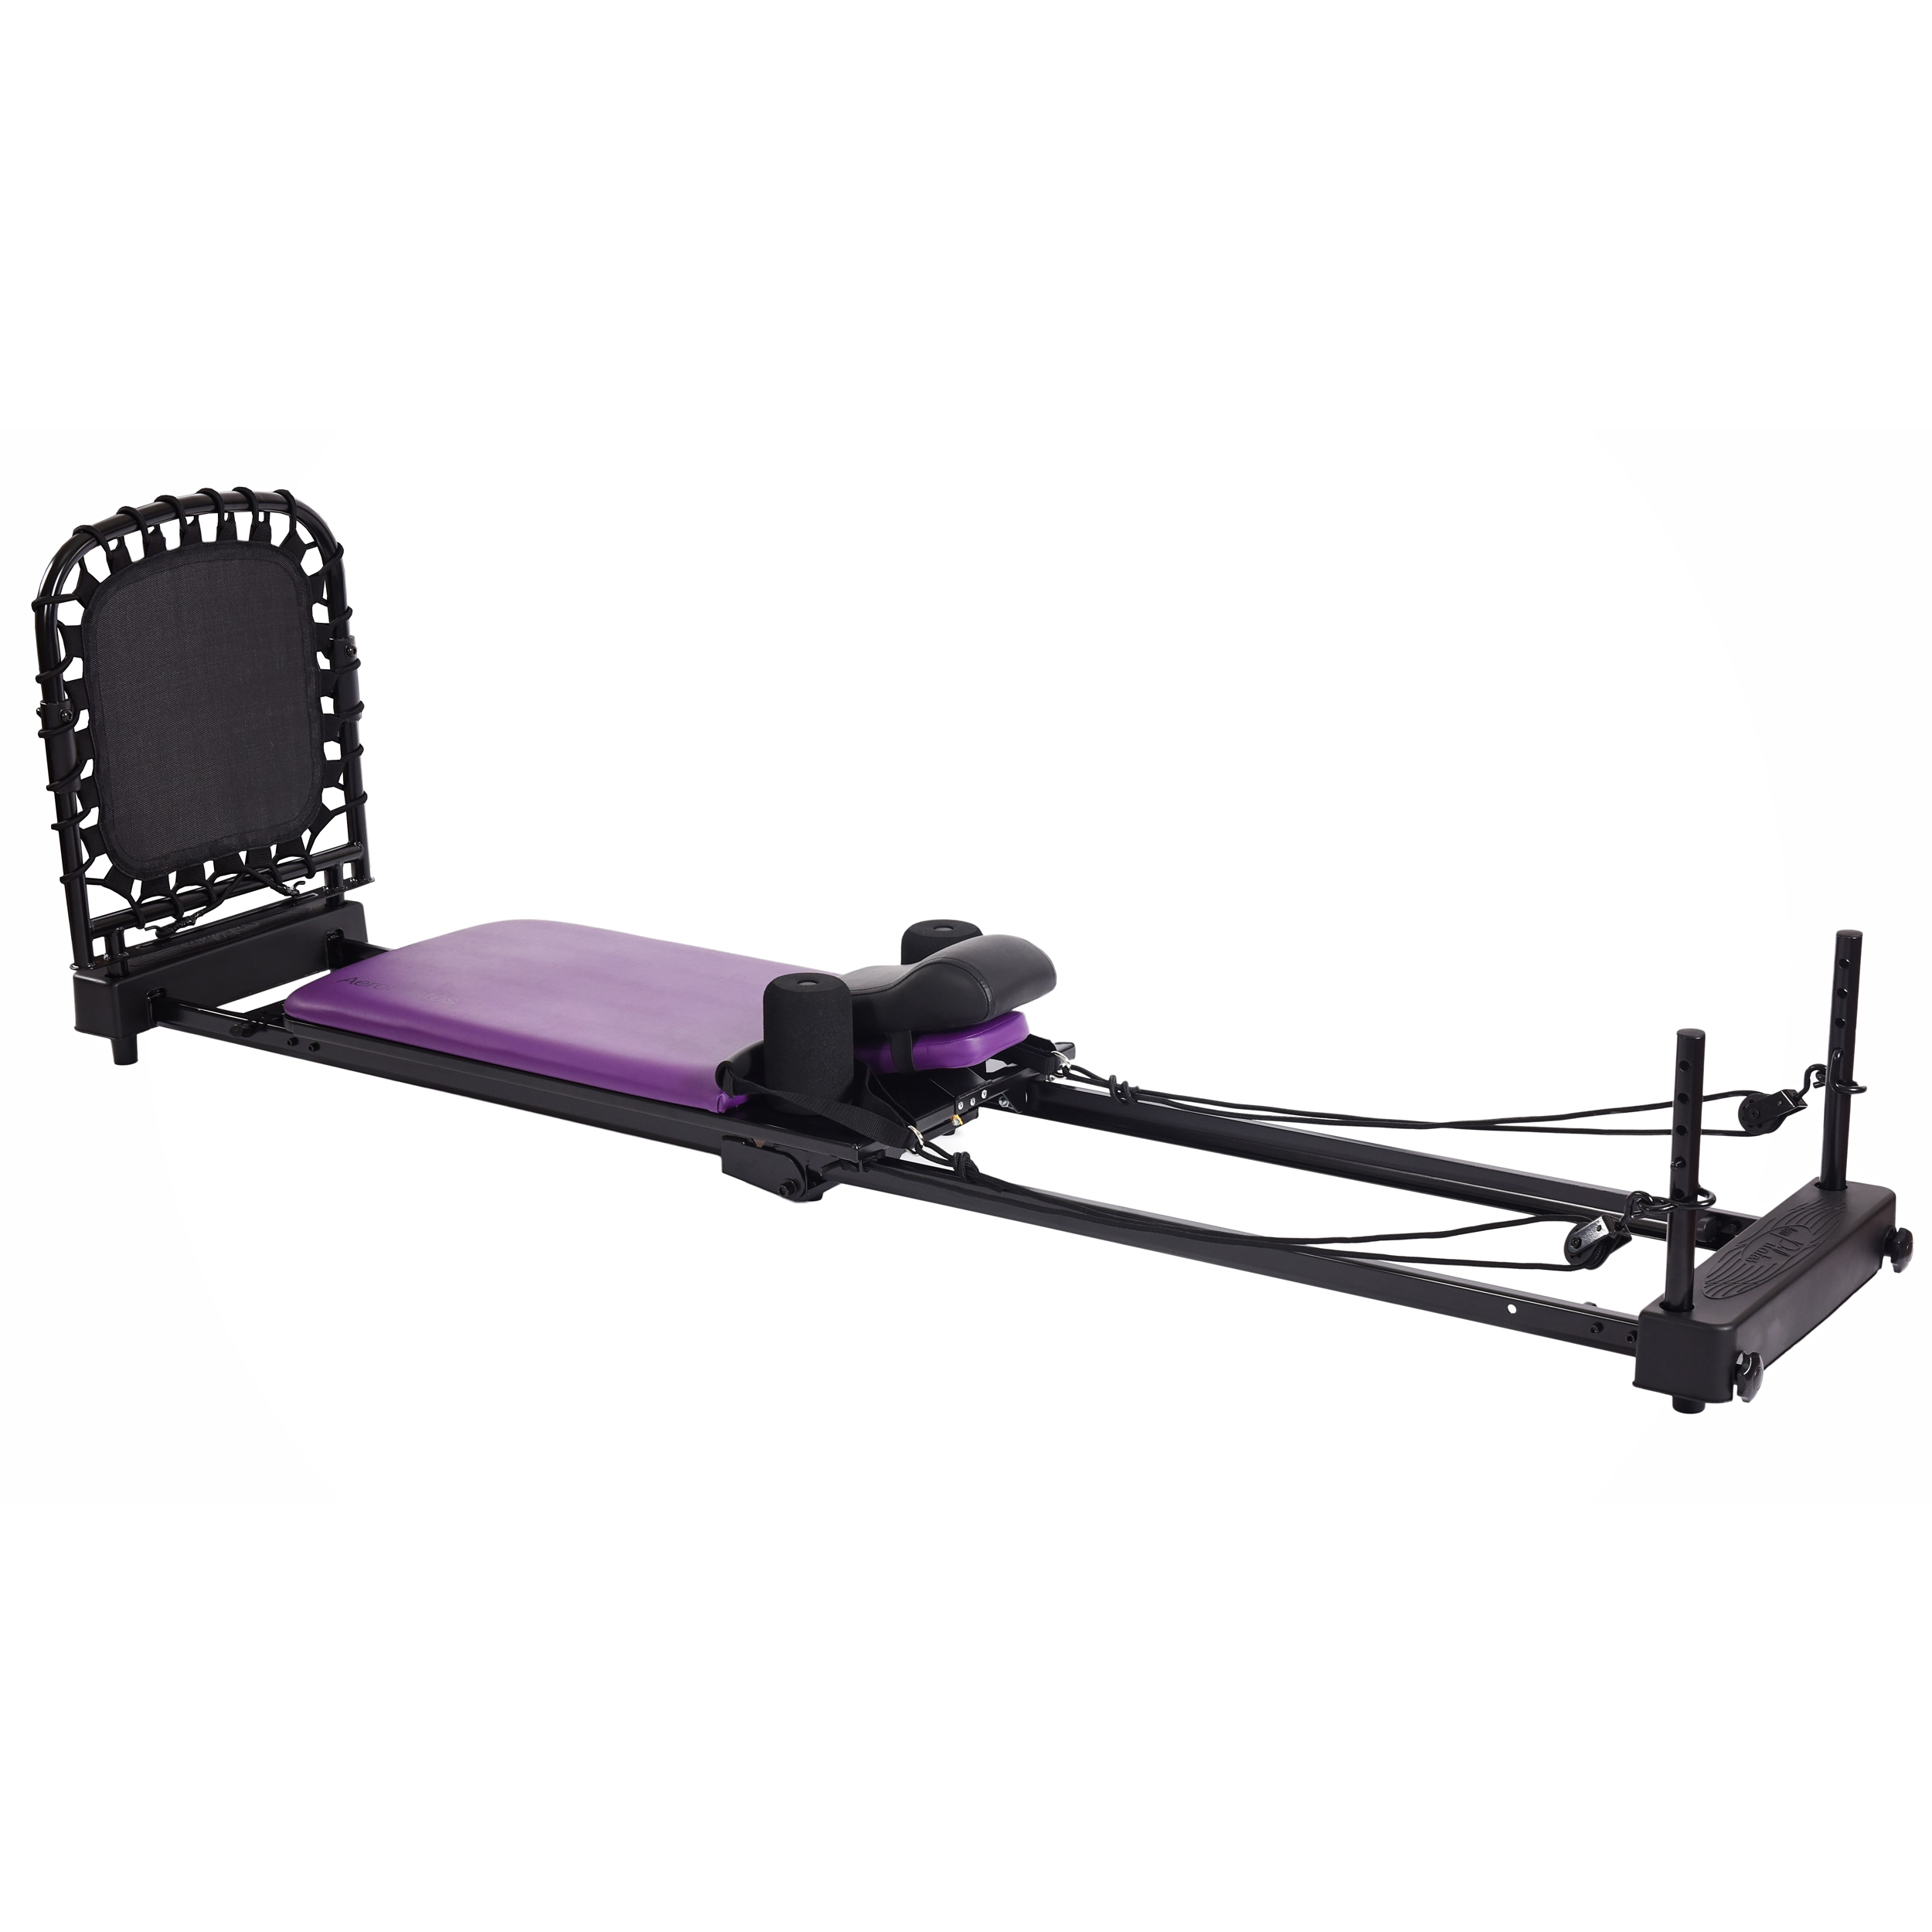 AeroPilates Reformer Plus 379 Product Photo full view.